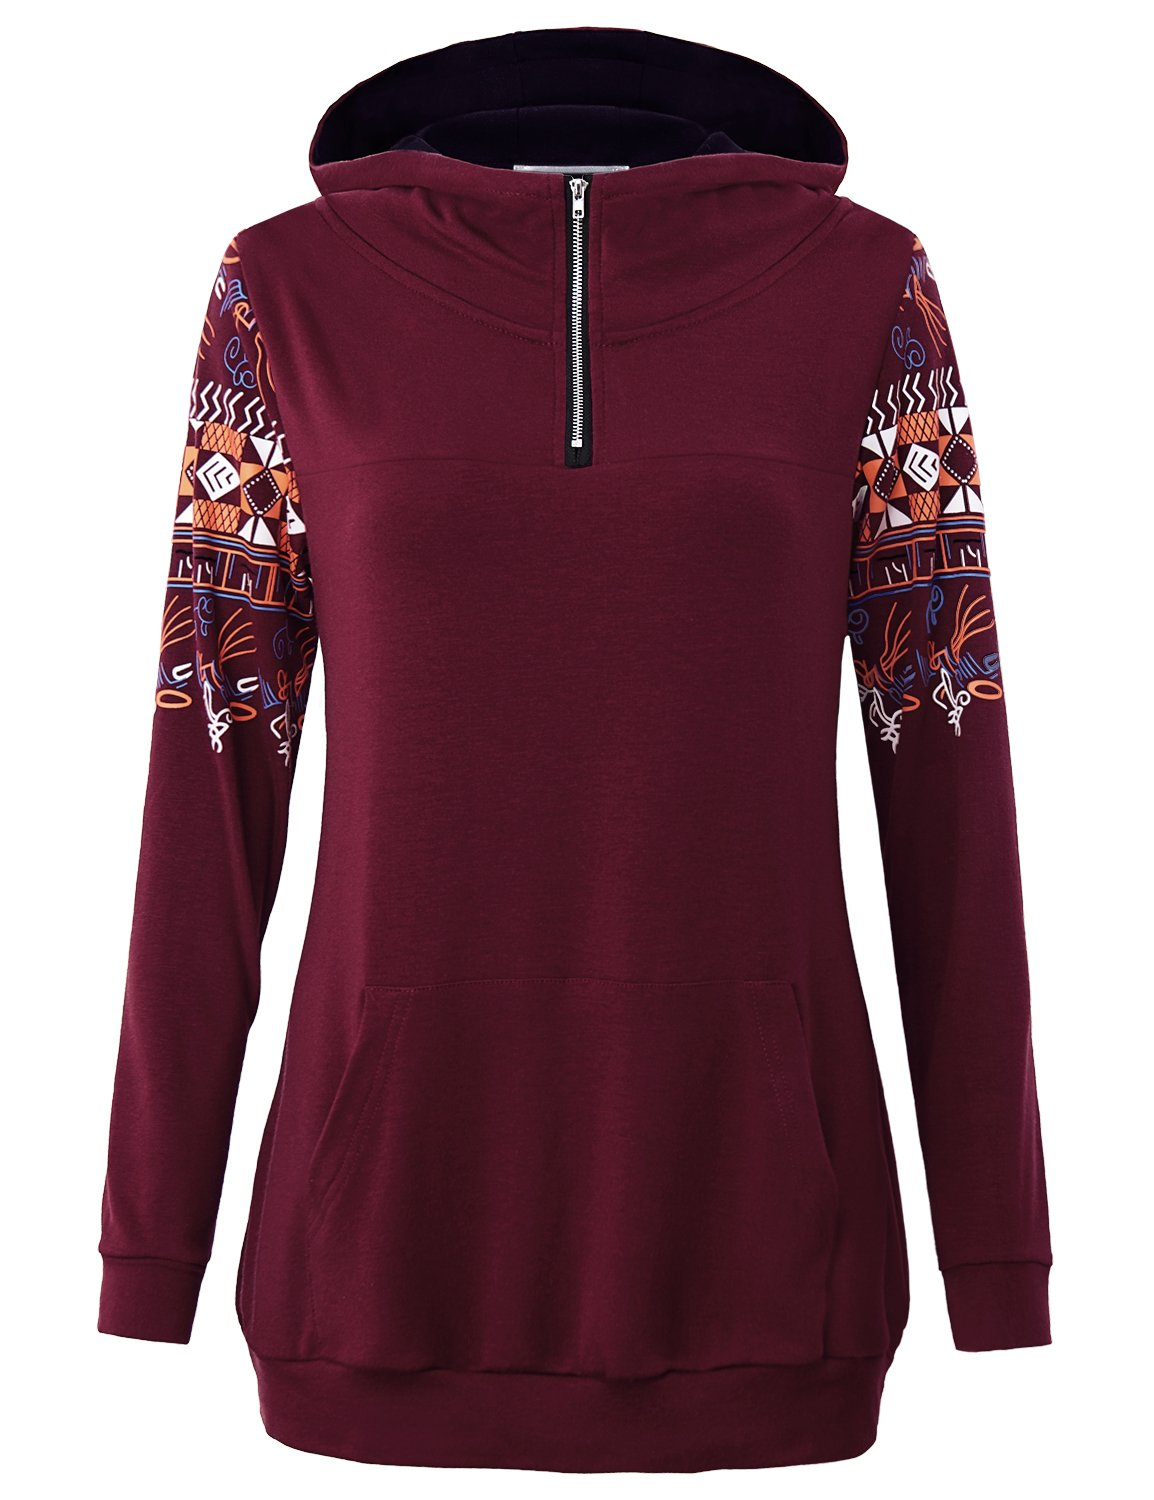 MOQIVGI Hoodies Teen Girls, Ladies Long Sleeve High Neck Tops Zipper Athleisure Wear Daily Flattering Vintage Knit Supreme Sweater 1/4 Zip Sporty Design Solid Color Hoodie Wine XX-Large